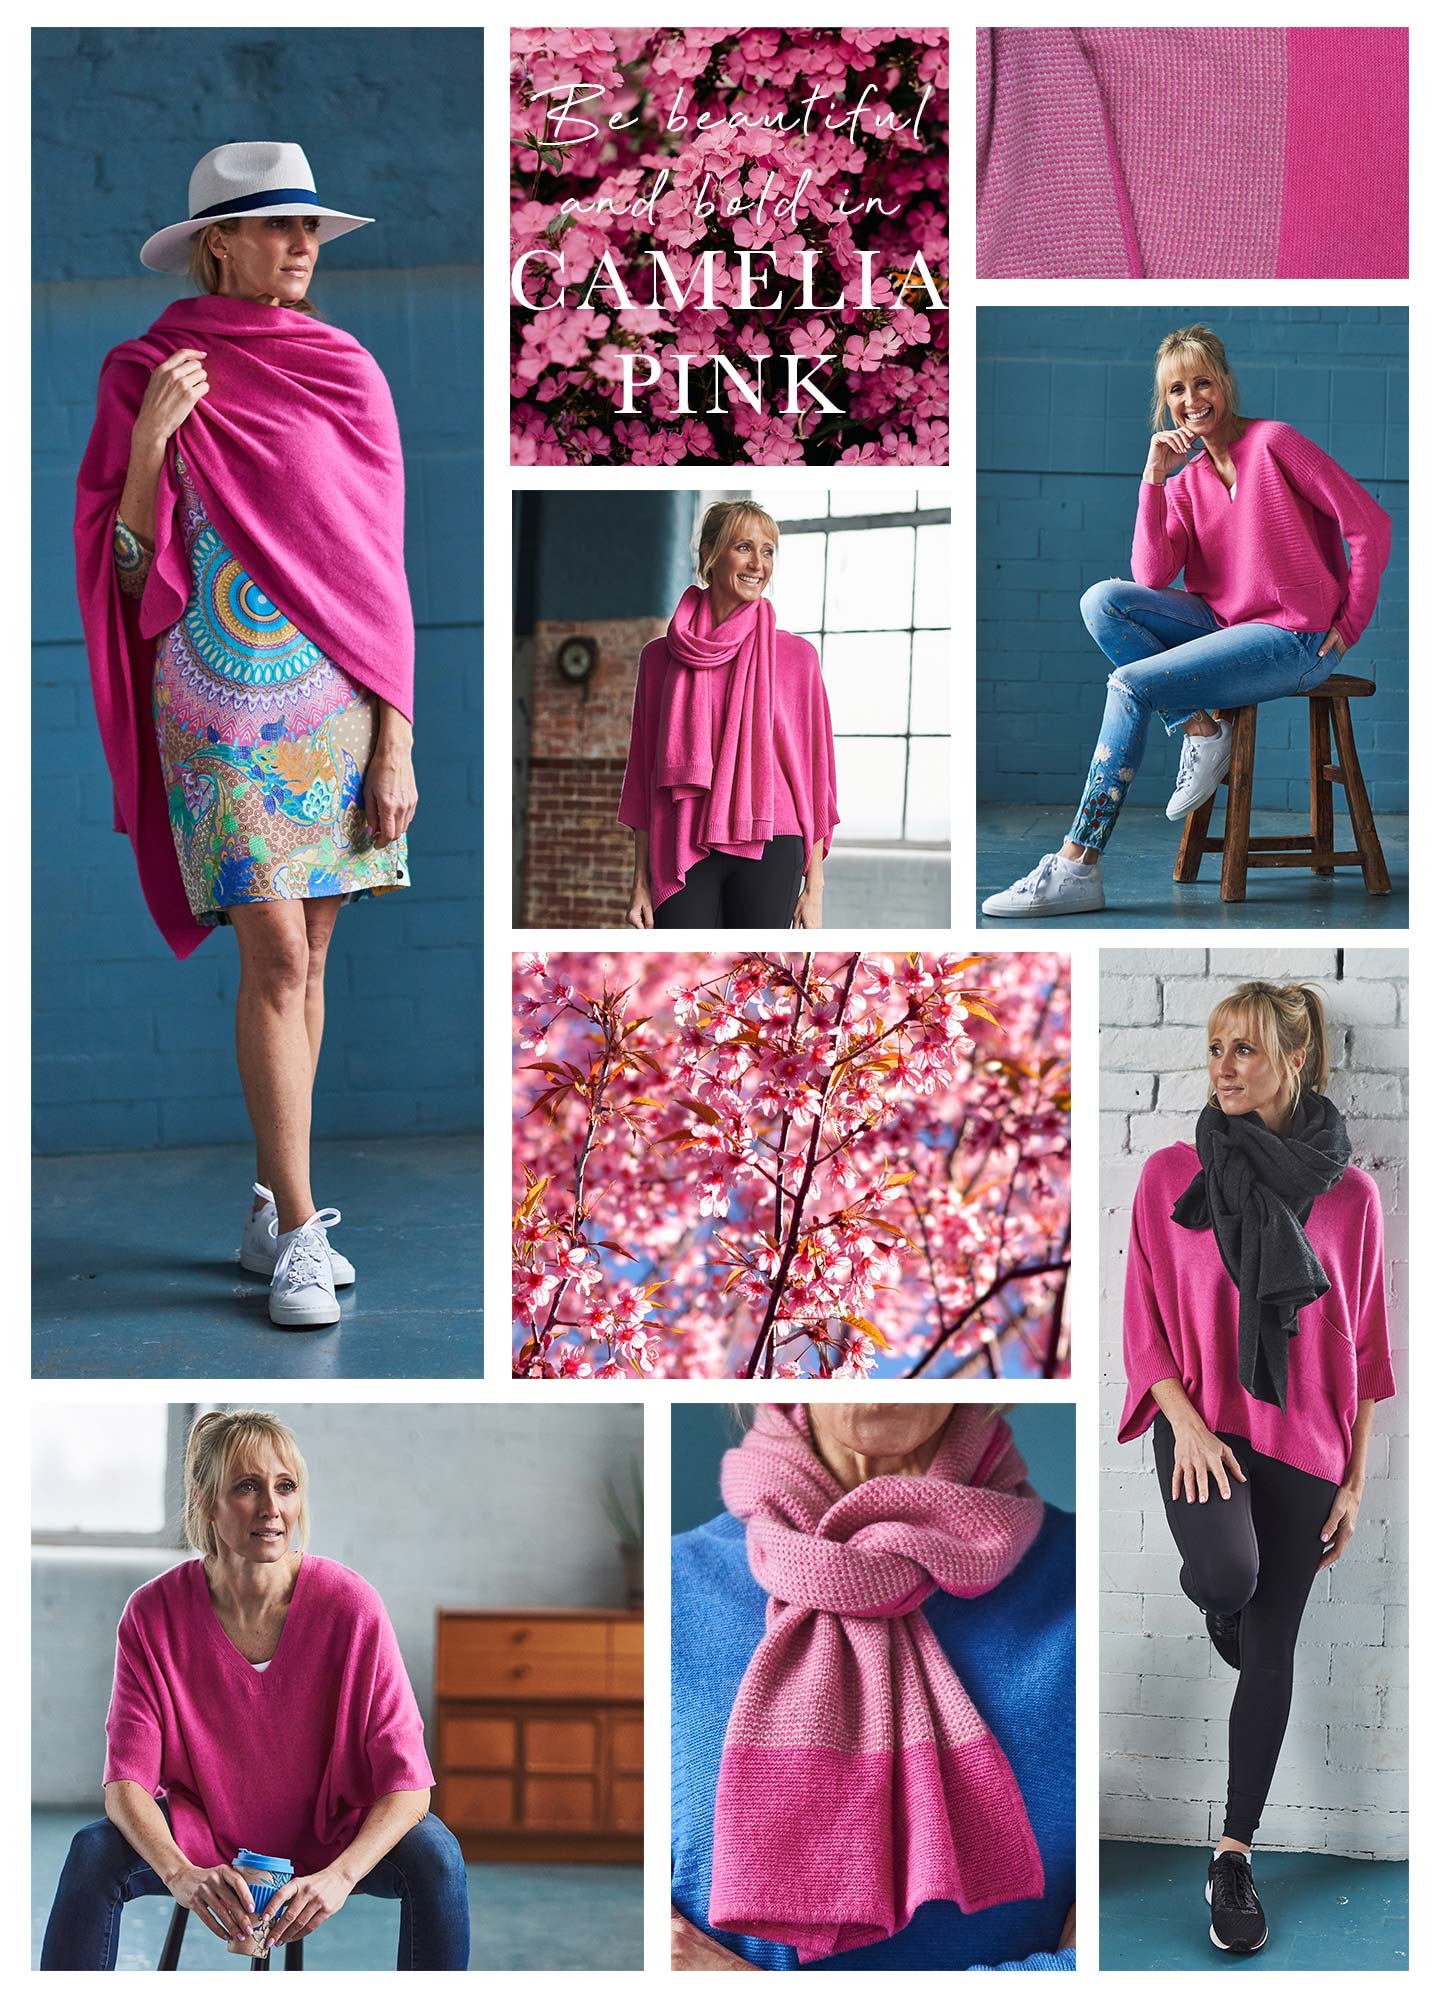 pink cashmere clothing images with pink blossom and textures